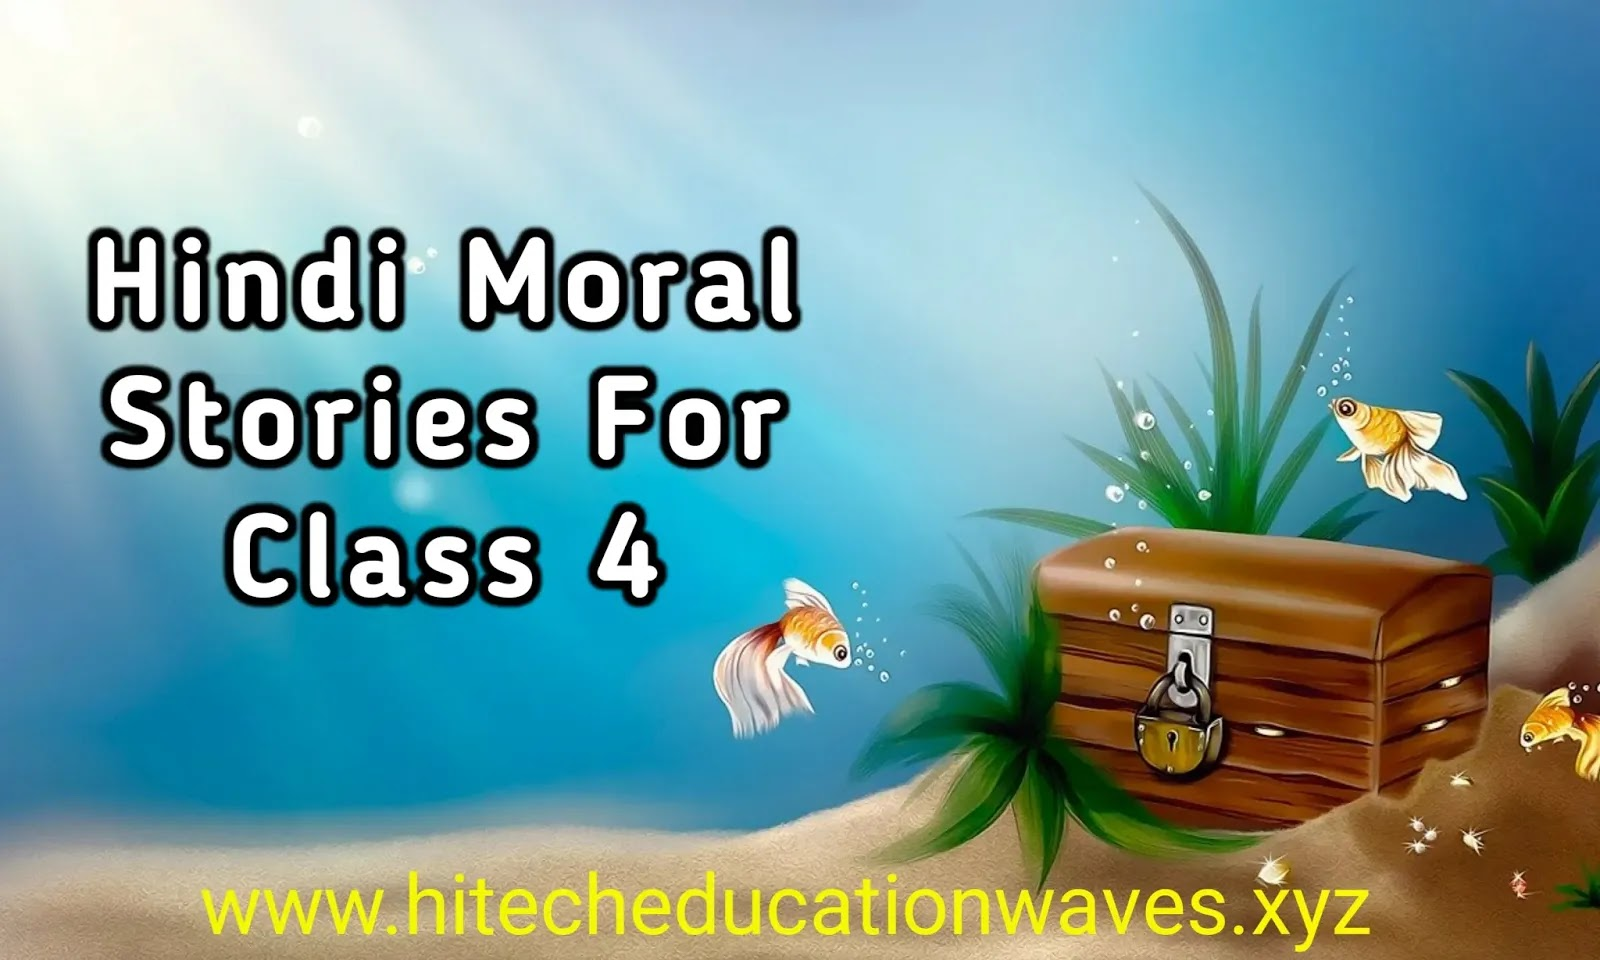 Moral Hindi Short Stories For Class 4 Students And Childrens